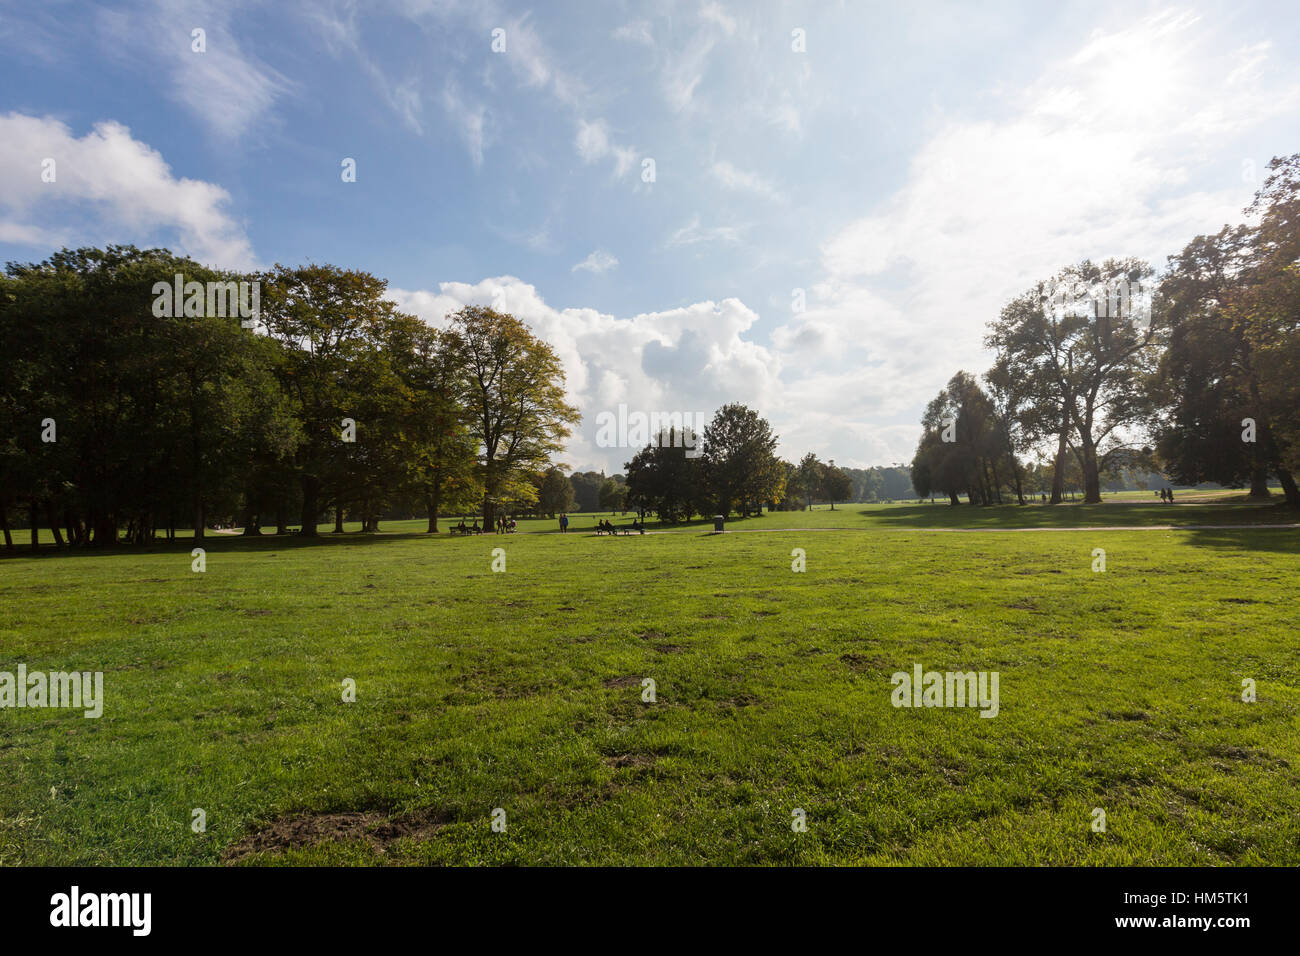 Englischer Garten, English Garden, Munich, Germany - Stock Image